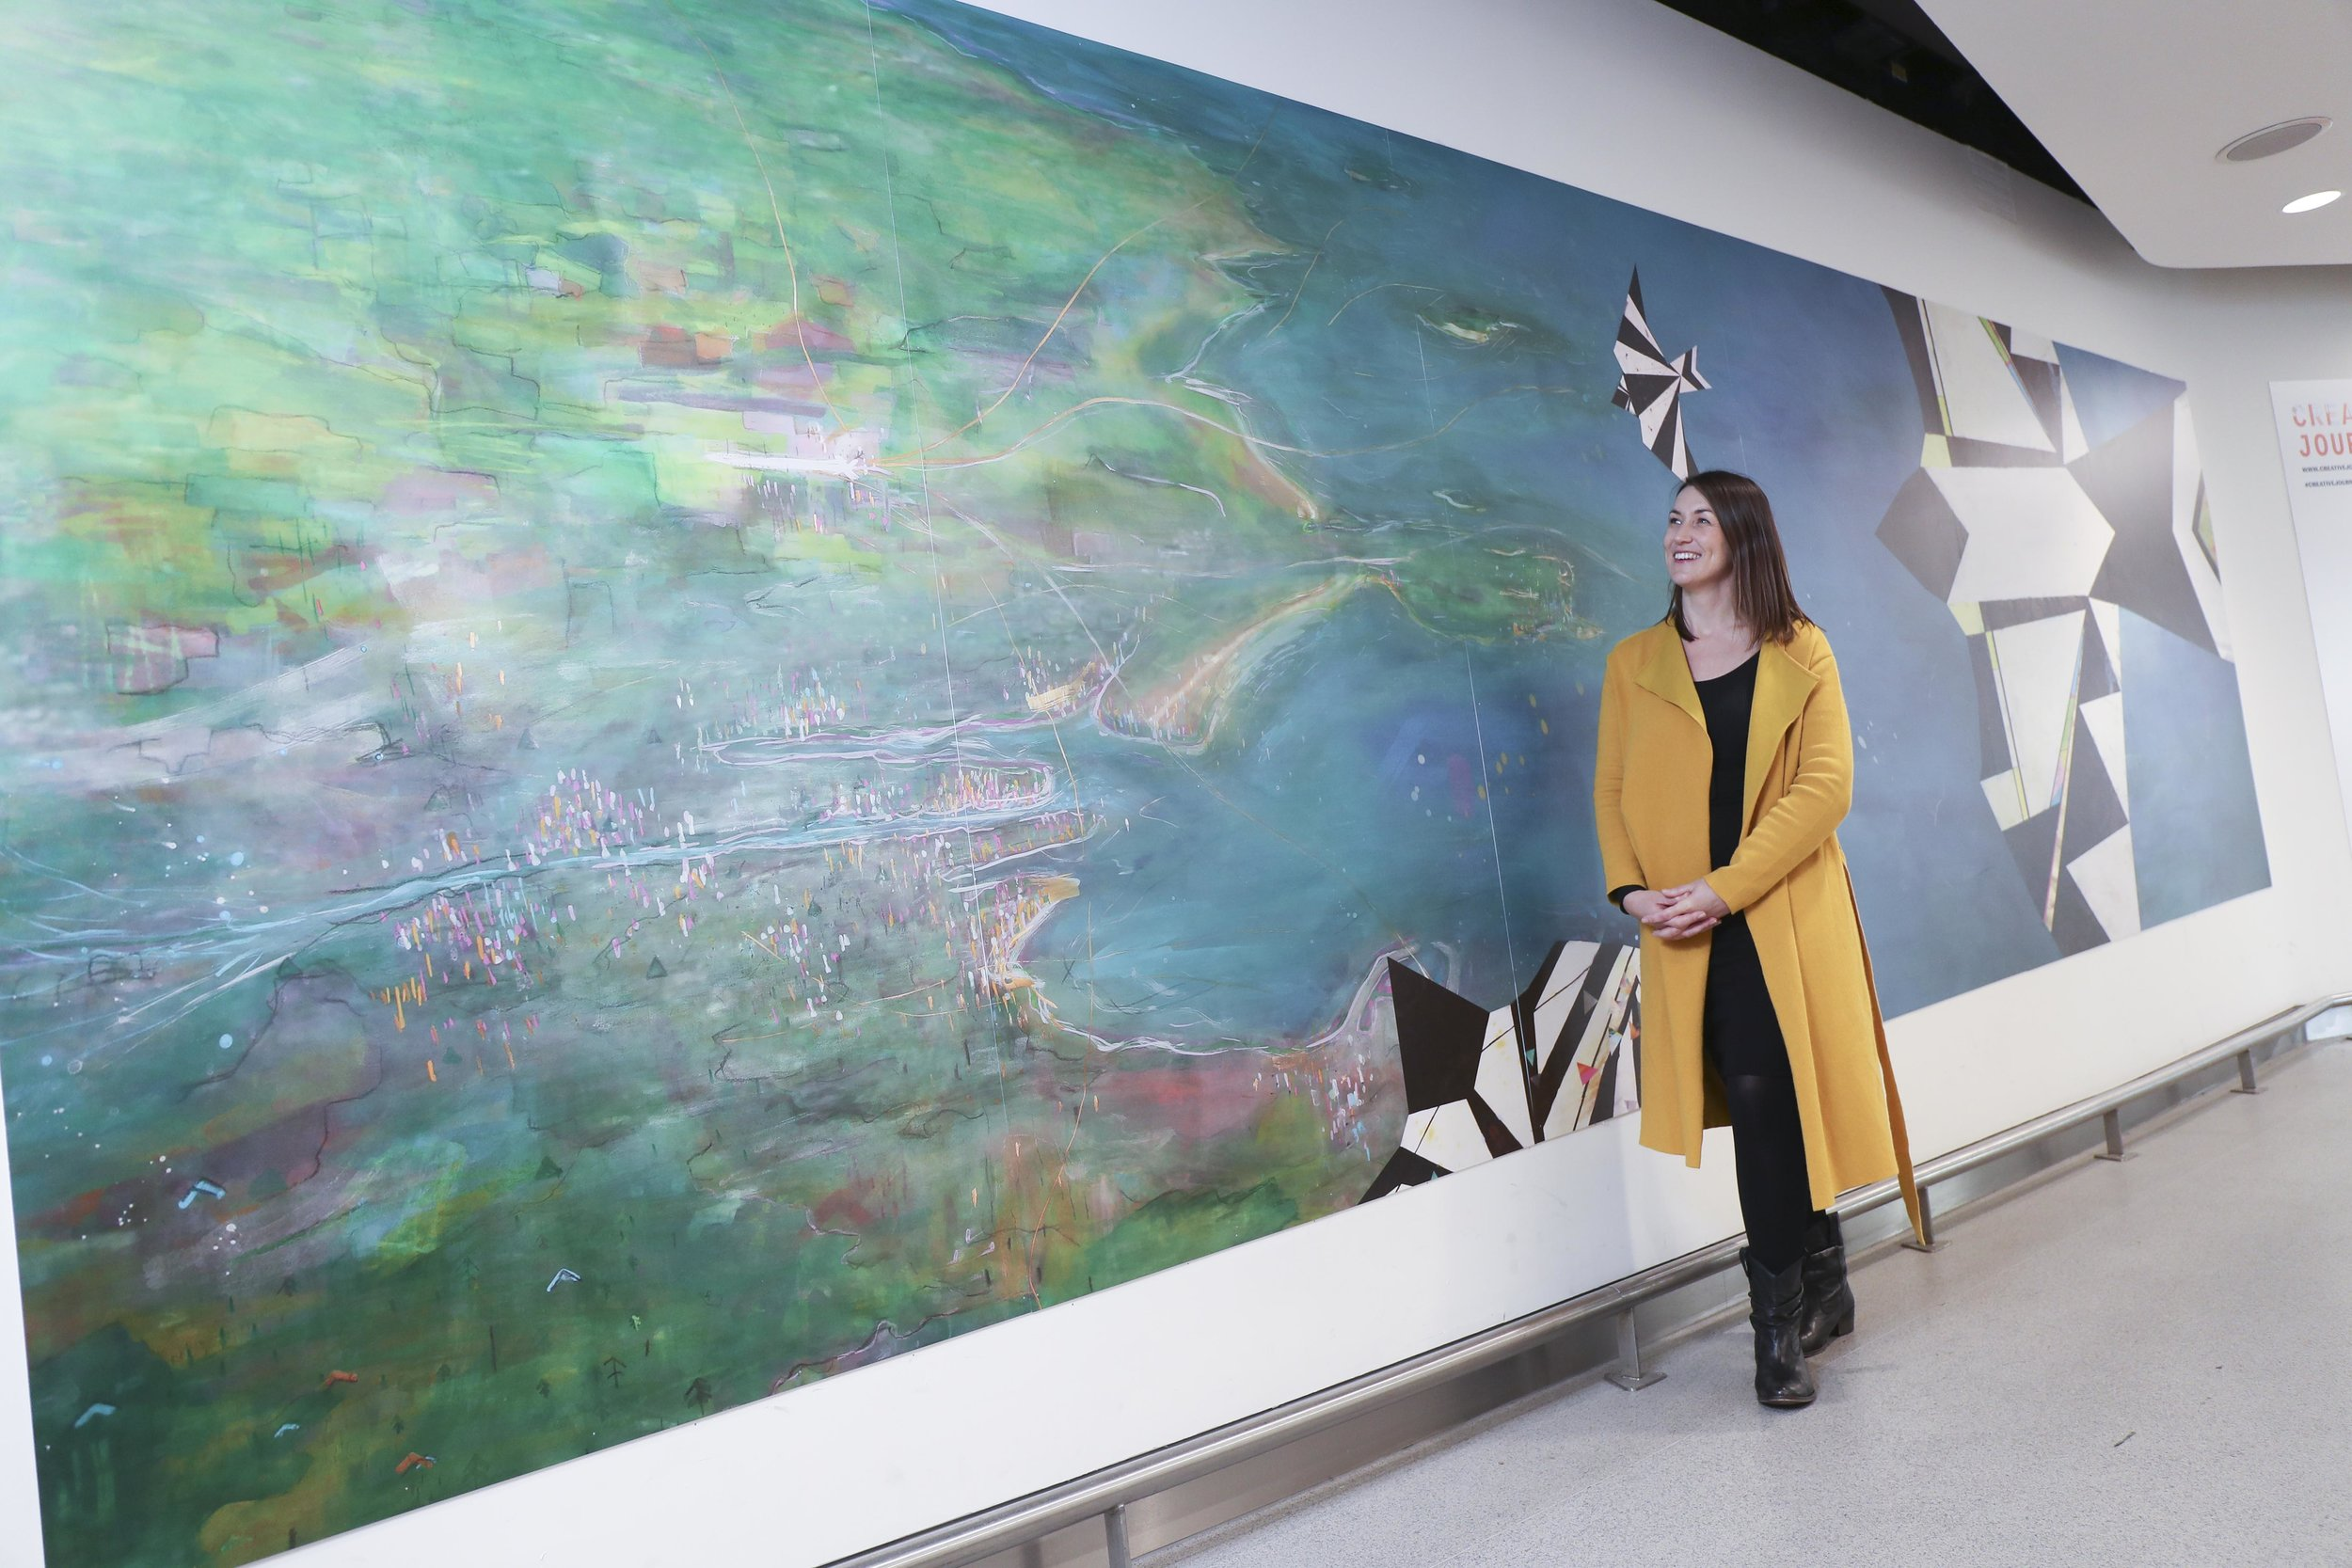 Artist Deidre Bryne reviews the installation of her work at Dublin Airport.